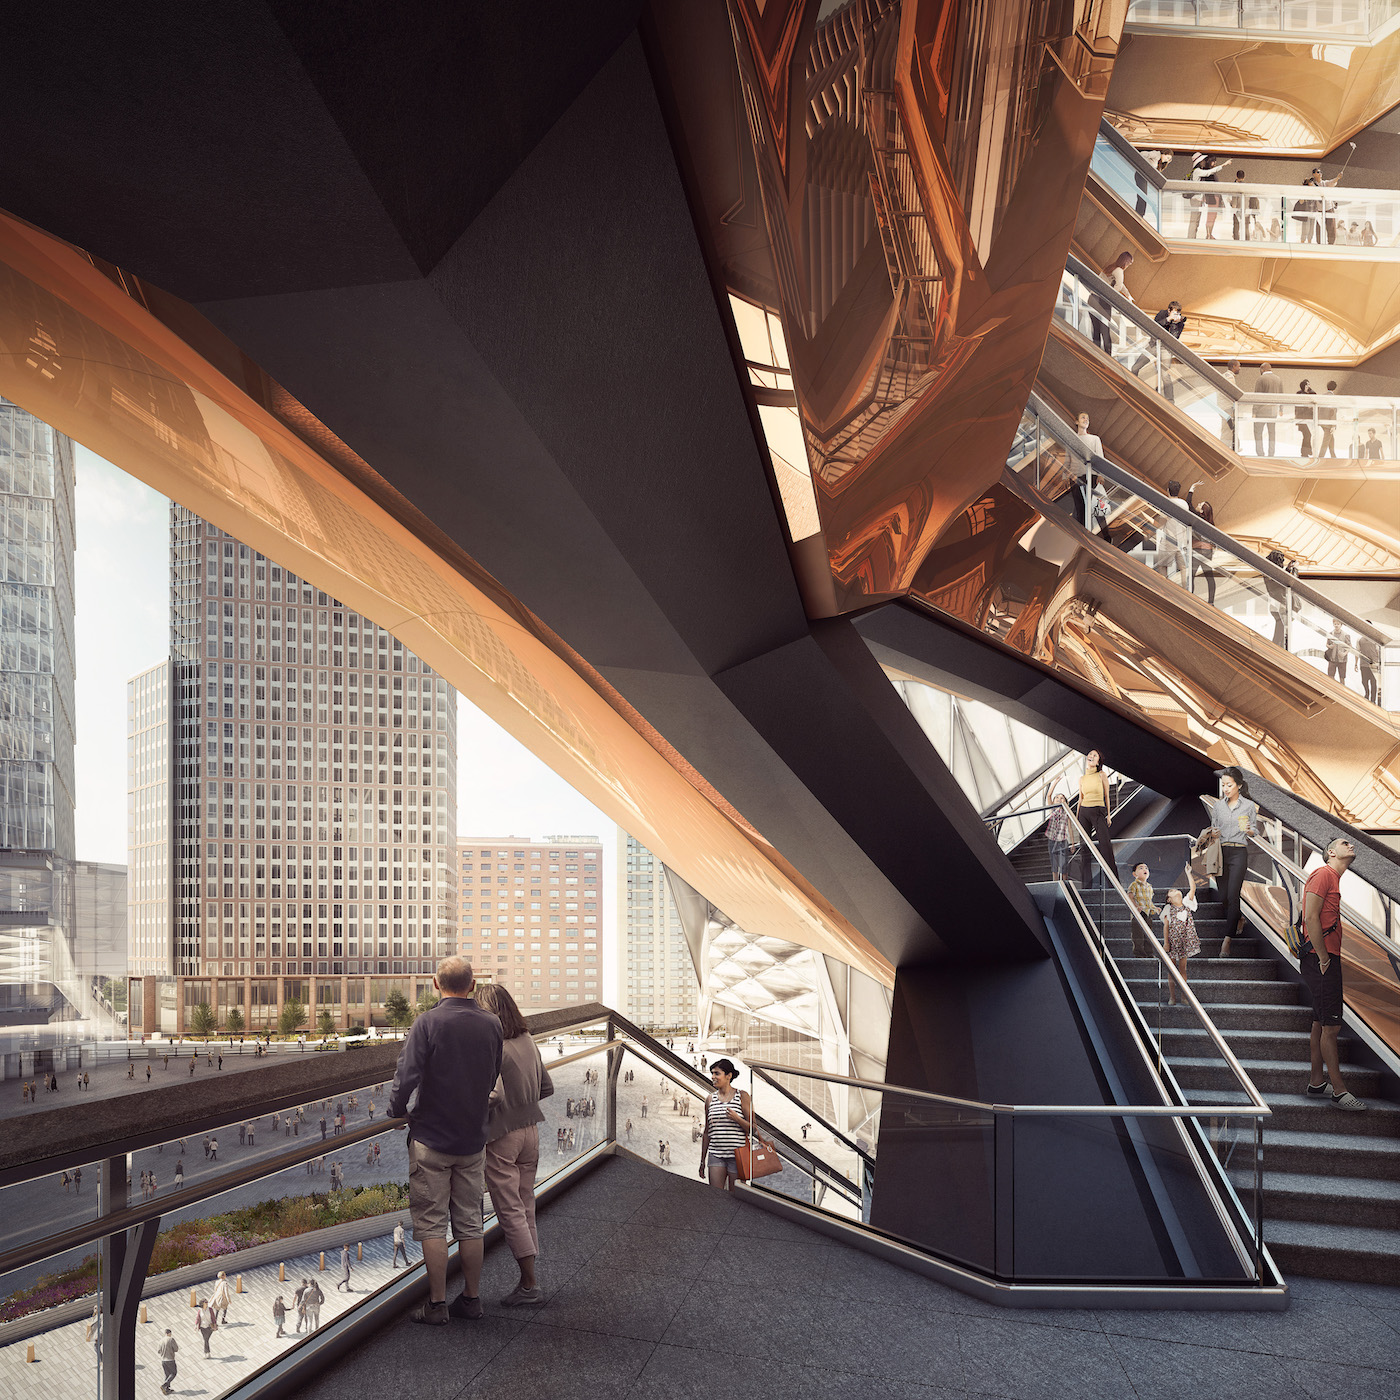 New York Is Getting a 16-Story, $150 Million Staircase to Nowhere